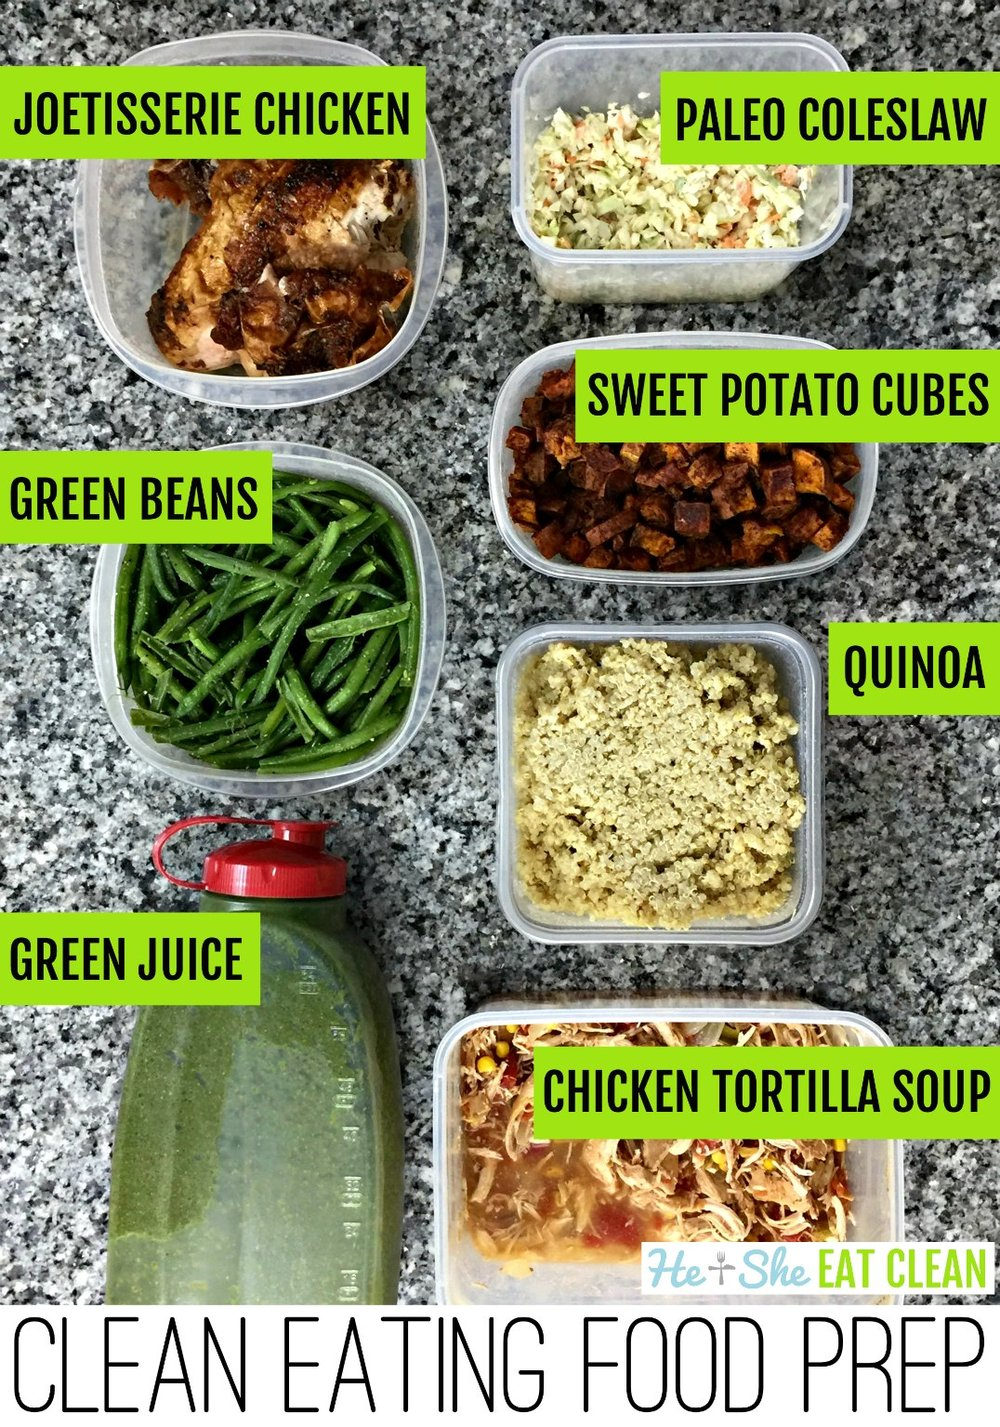 clean-eating-food-prep-he-and-she-eat-clean-healthy-recipes.jpg